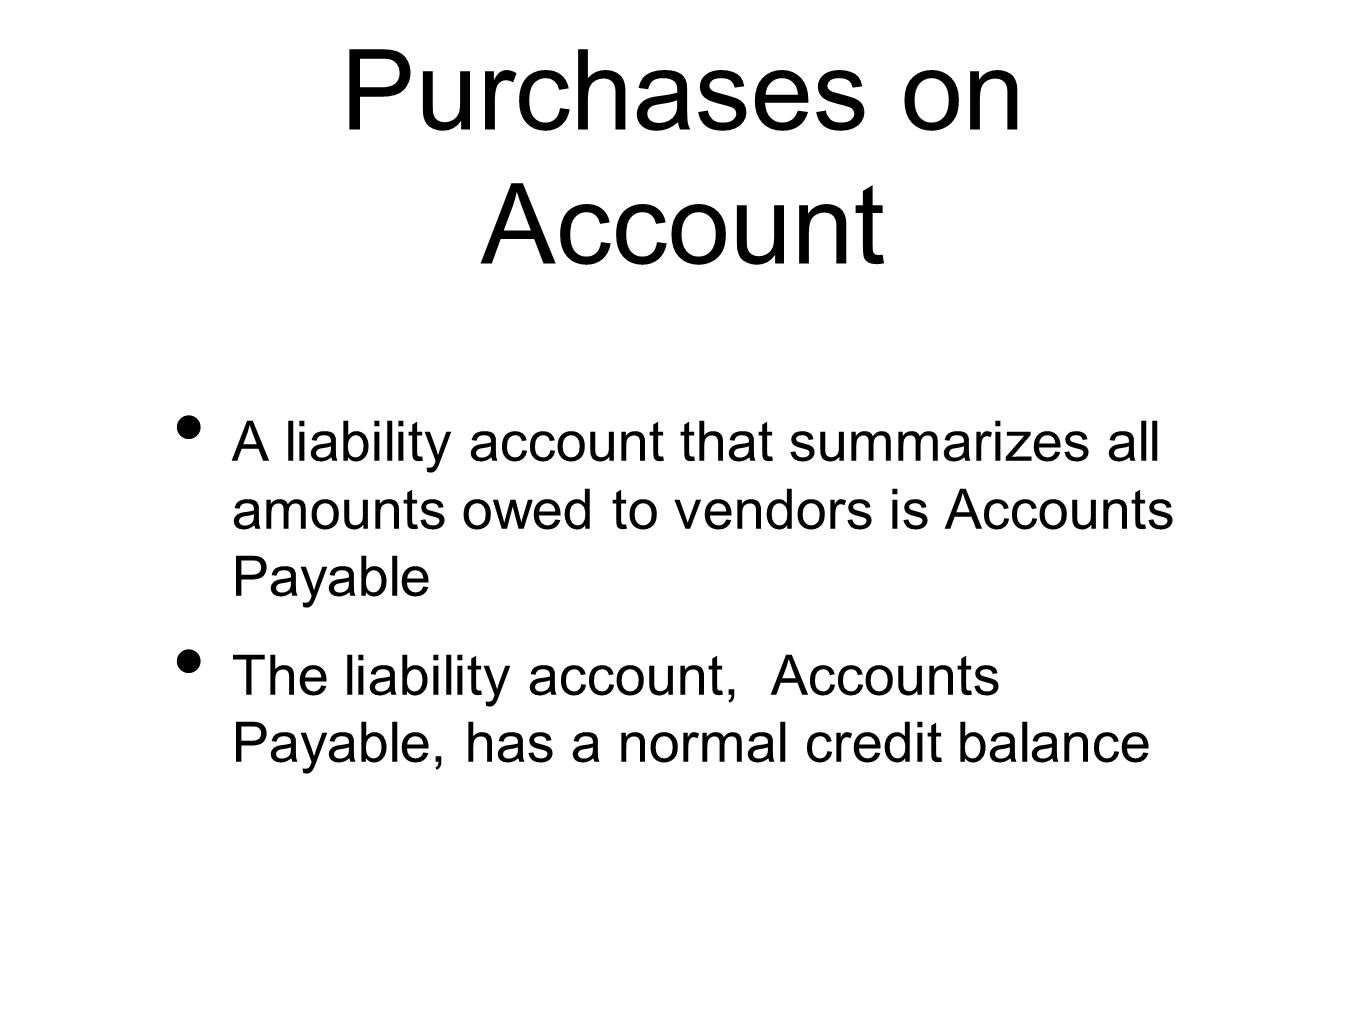 Purchases on Account A liability account that summarizes all amounts owed to vendors is Accounts Payable The liability account, Accounts Payable, has